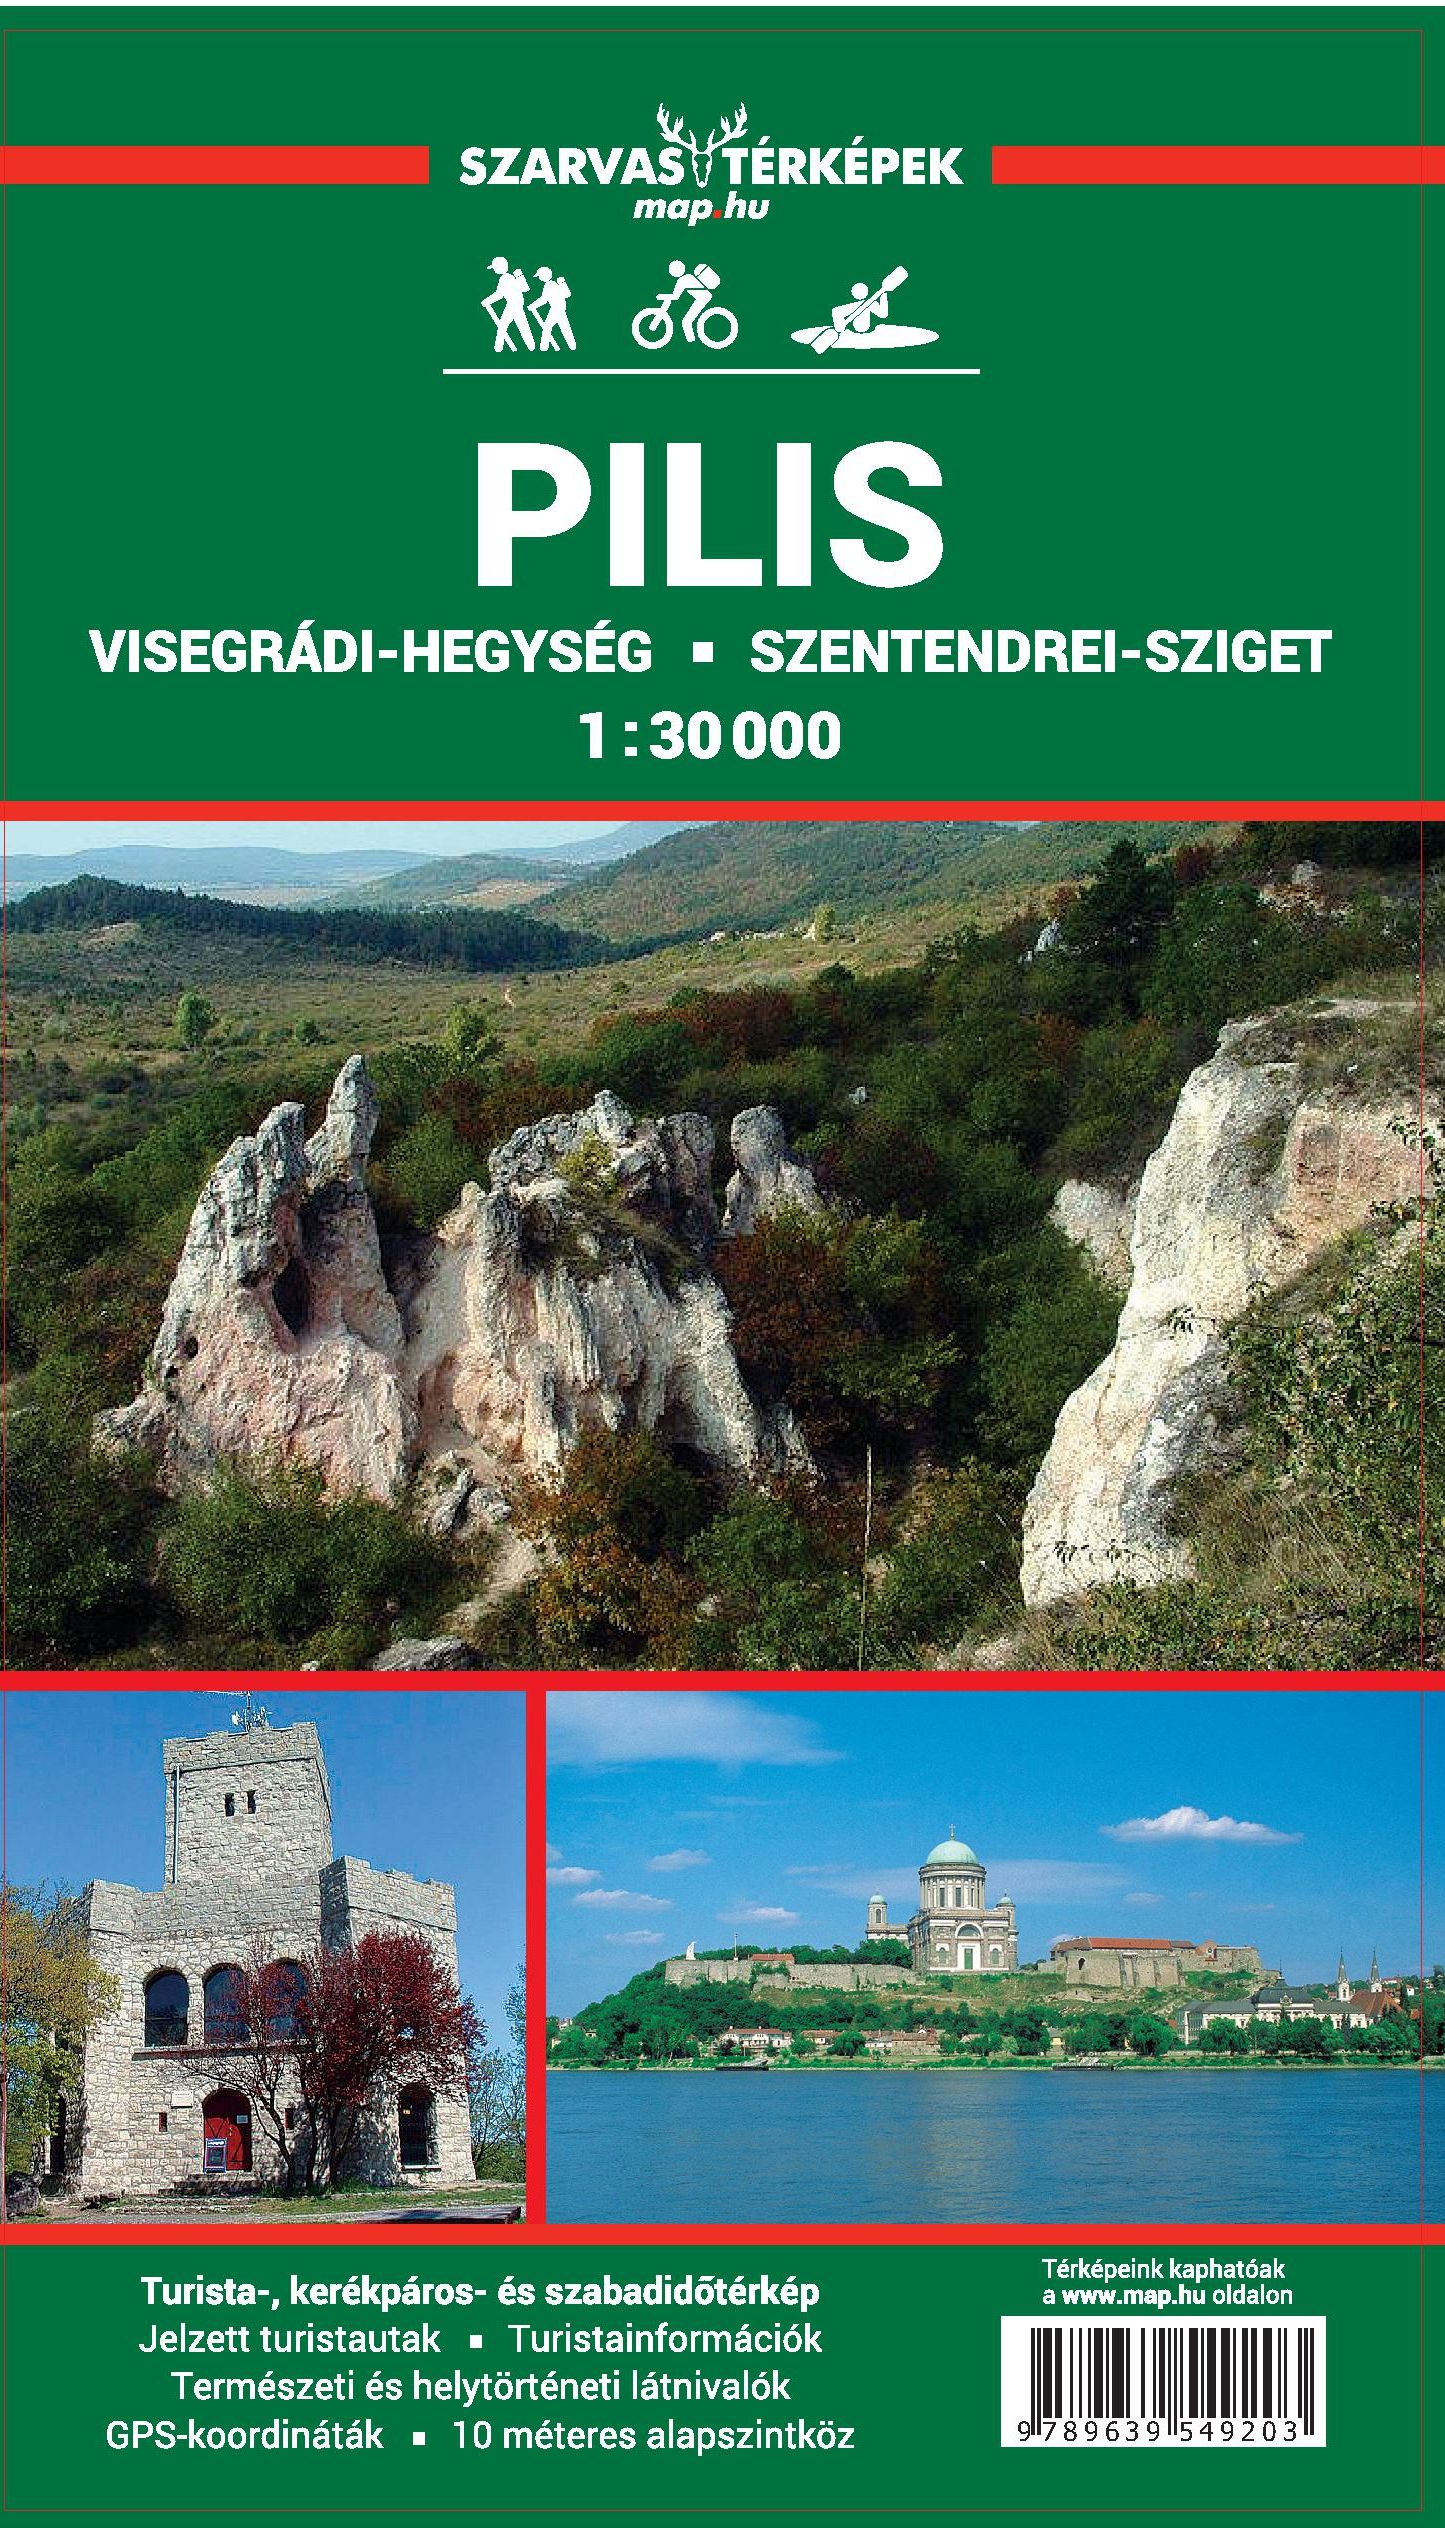 Detailed walking and biking info, GPS co-ordinates. Mini tourist guide with leisure time tips. Inset maps of Esztergom, 1.15.000, Szentendre 1.10.000, Visegrad 1:15.000.